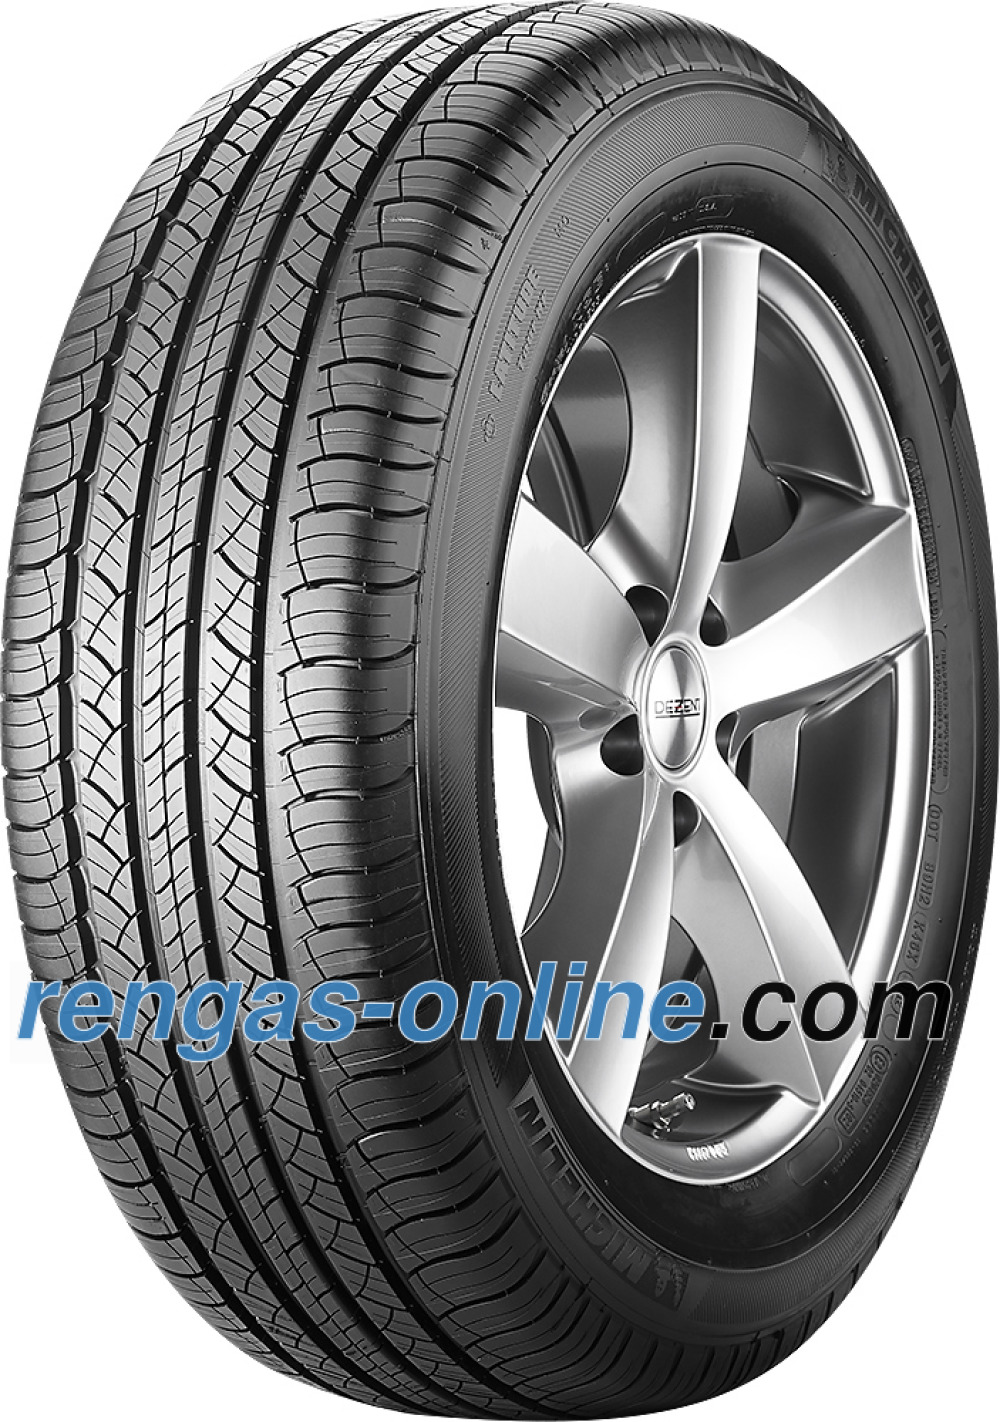 michelin-latitude-tour-hp-21560-r16-95h-grnx